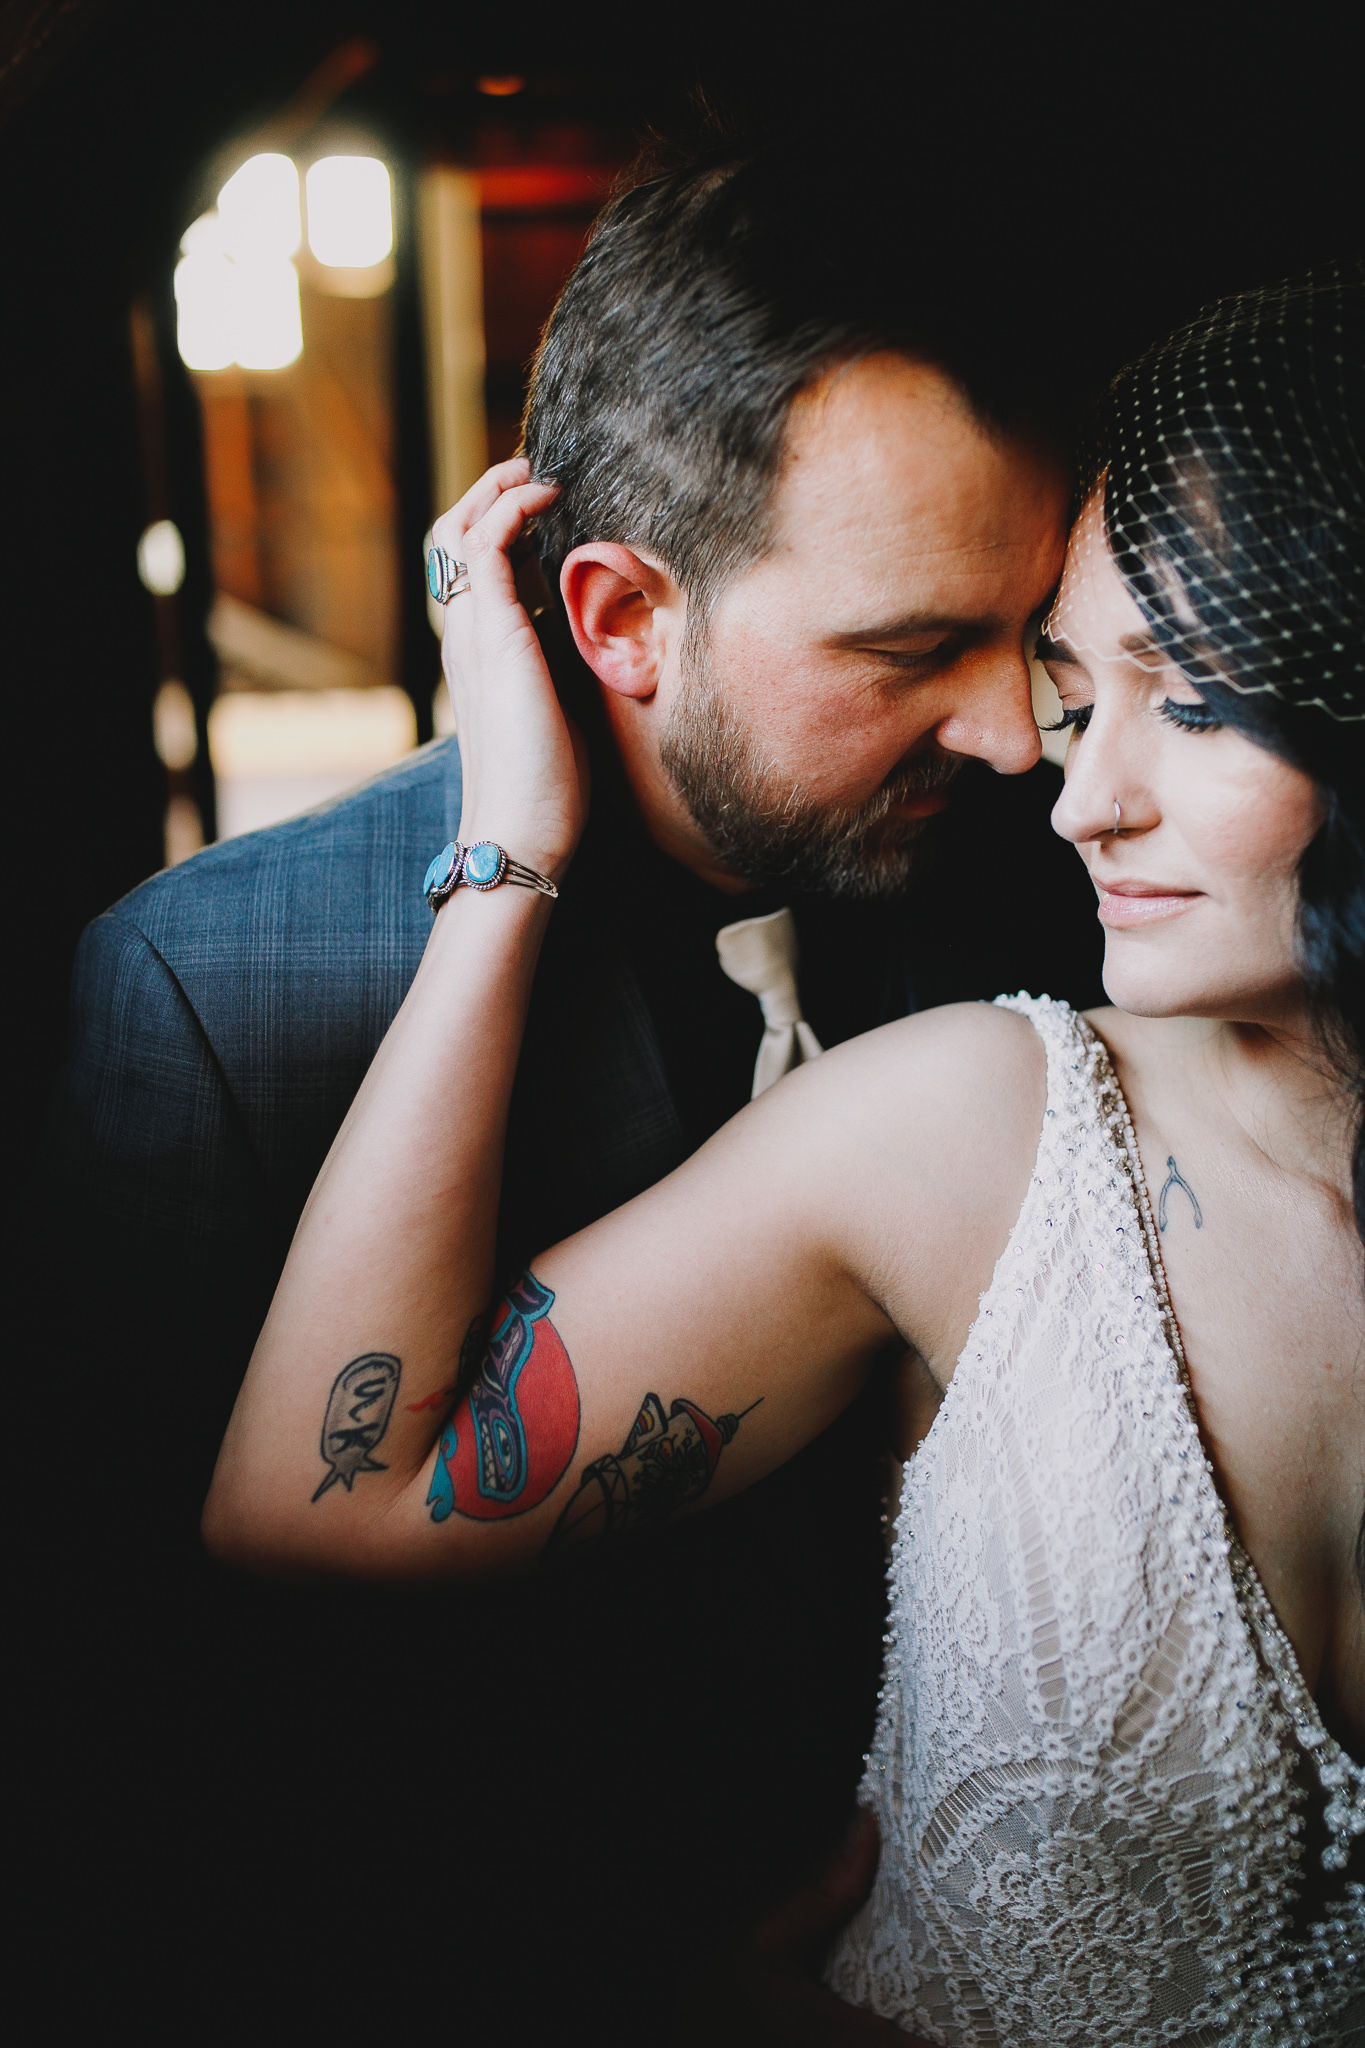 Archer Inspired Photography Sara and Aaron Winchester Mystery House NorCal San Jose California Wedding Photographer-321.jpg